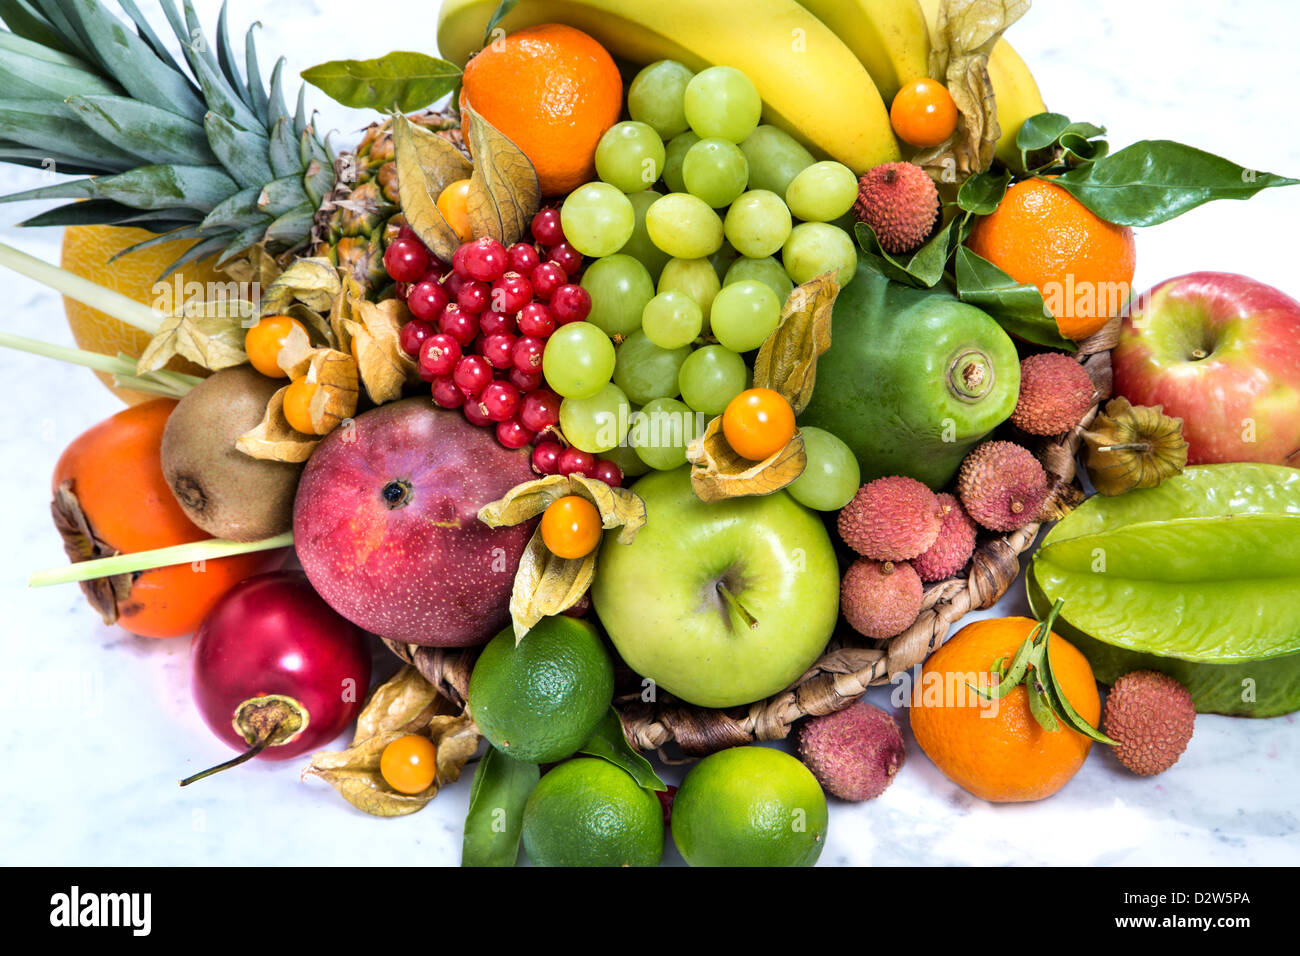 fruits assortiment vitamins exotic - Stock Image